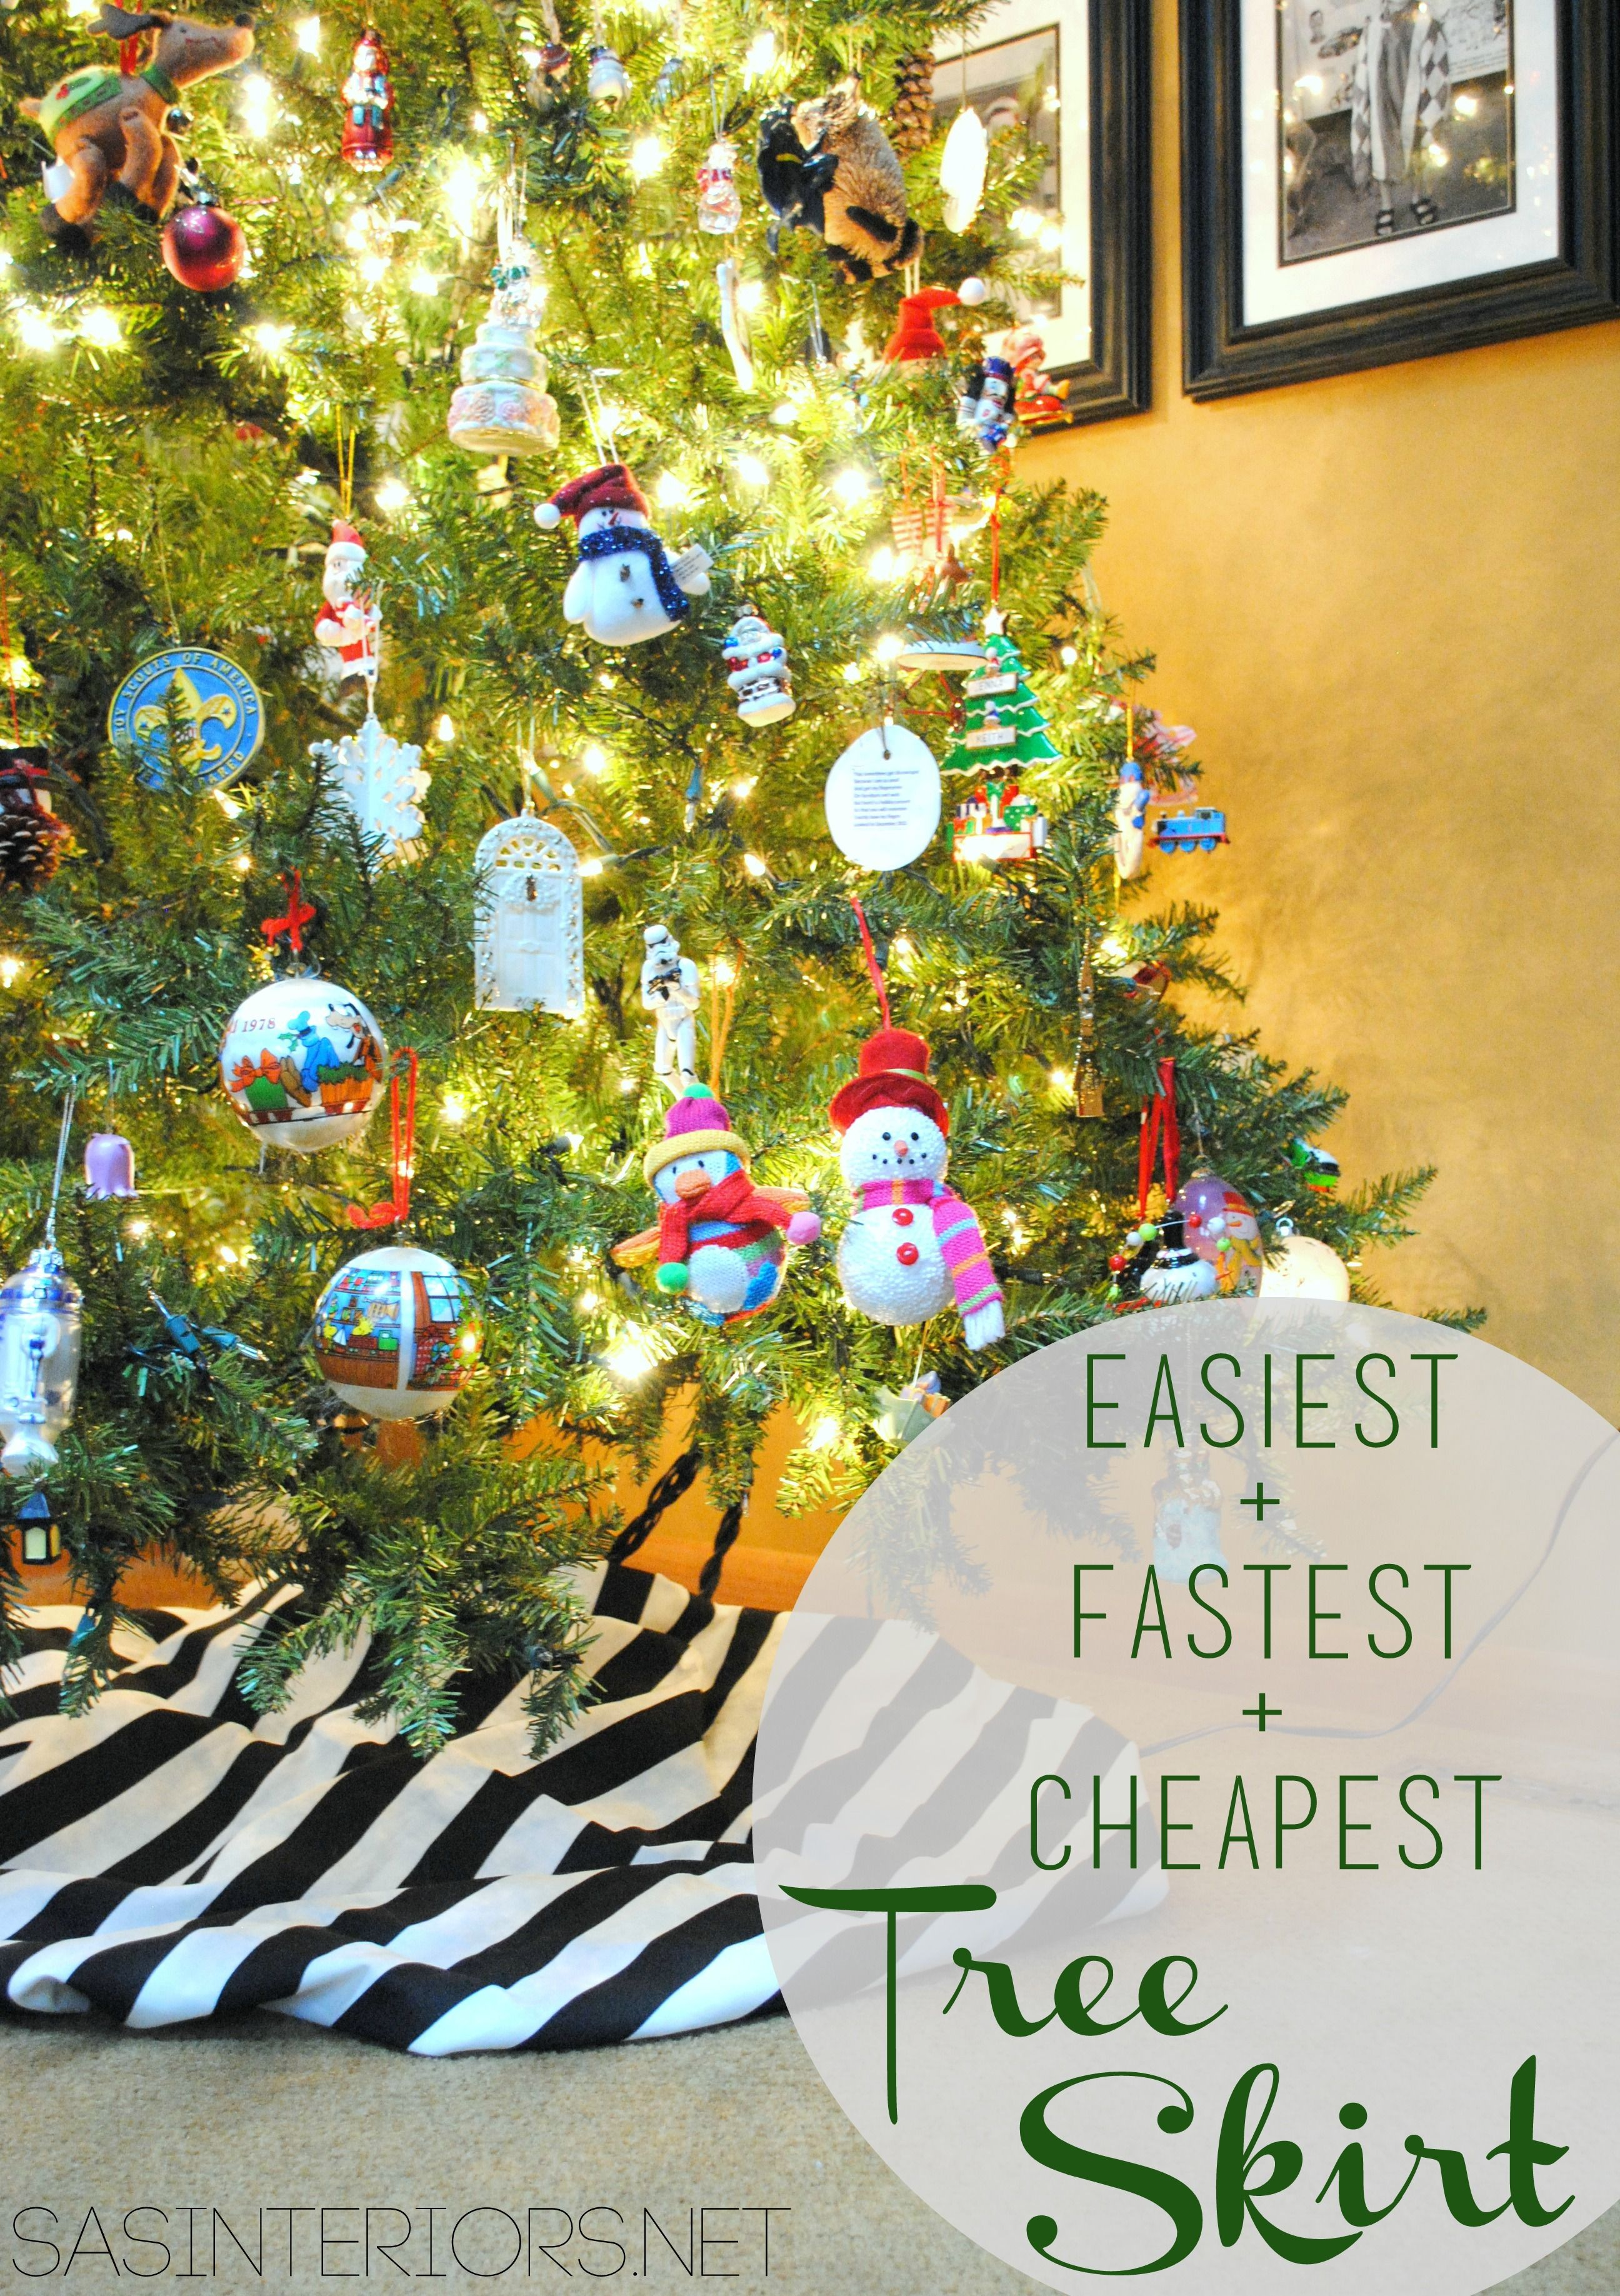 easiest fastest cheapest christmas tree skirt use 15 yds of fabric and wrap around tree follow easy instructions by jenna_burger - Cheap Discount Christmas Decorations